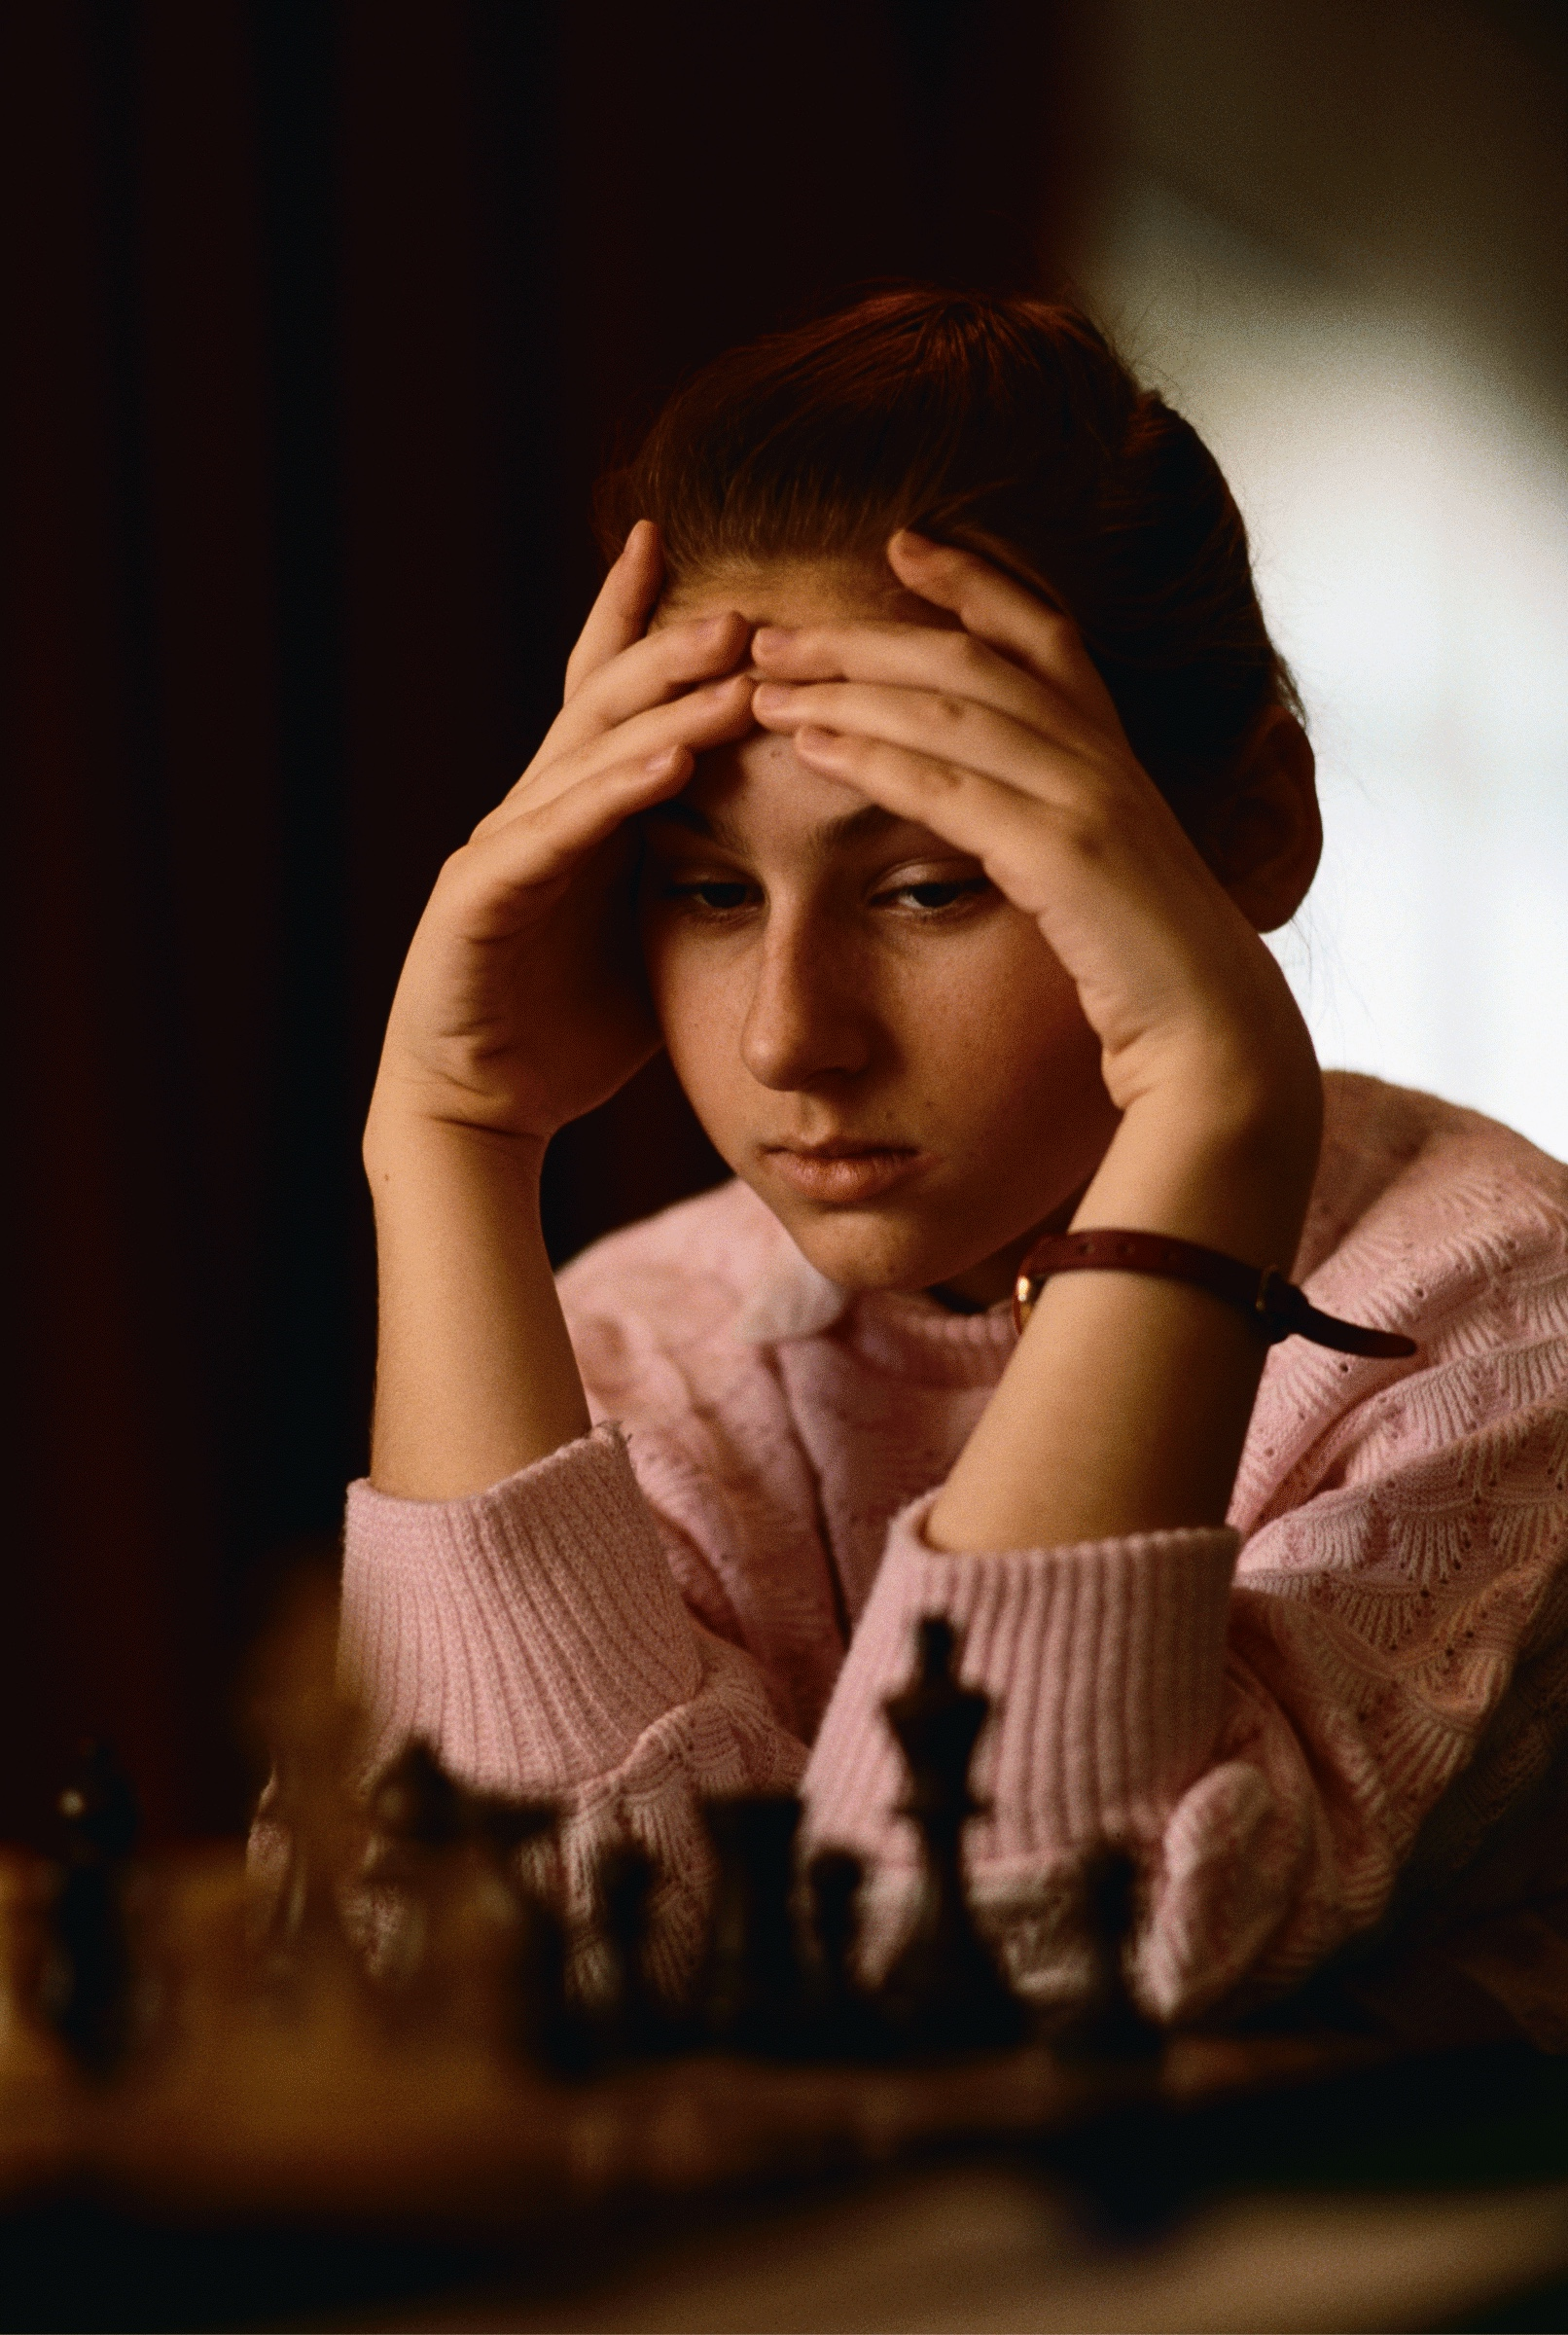 Polgár at age 12. Looking almost like a ballerina in a pink sweater, her hair pulled back, she stares pensively at a chess board.